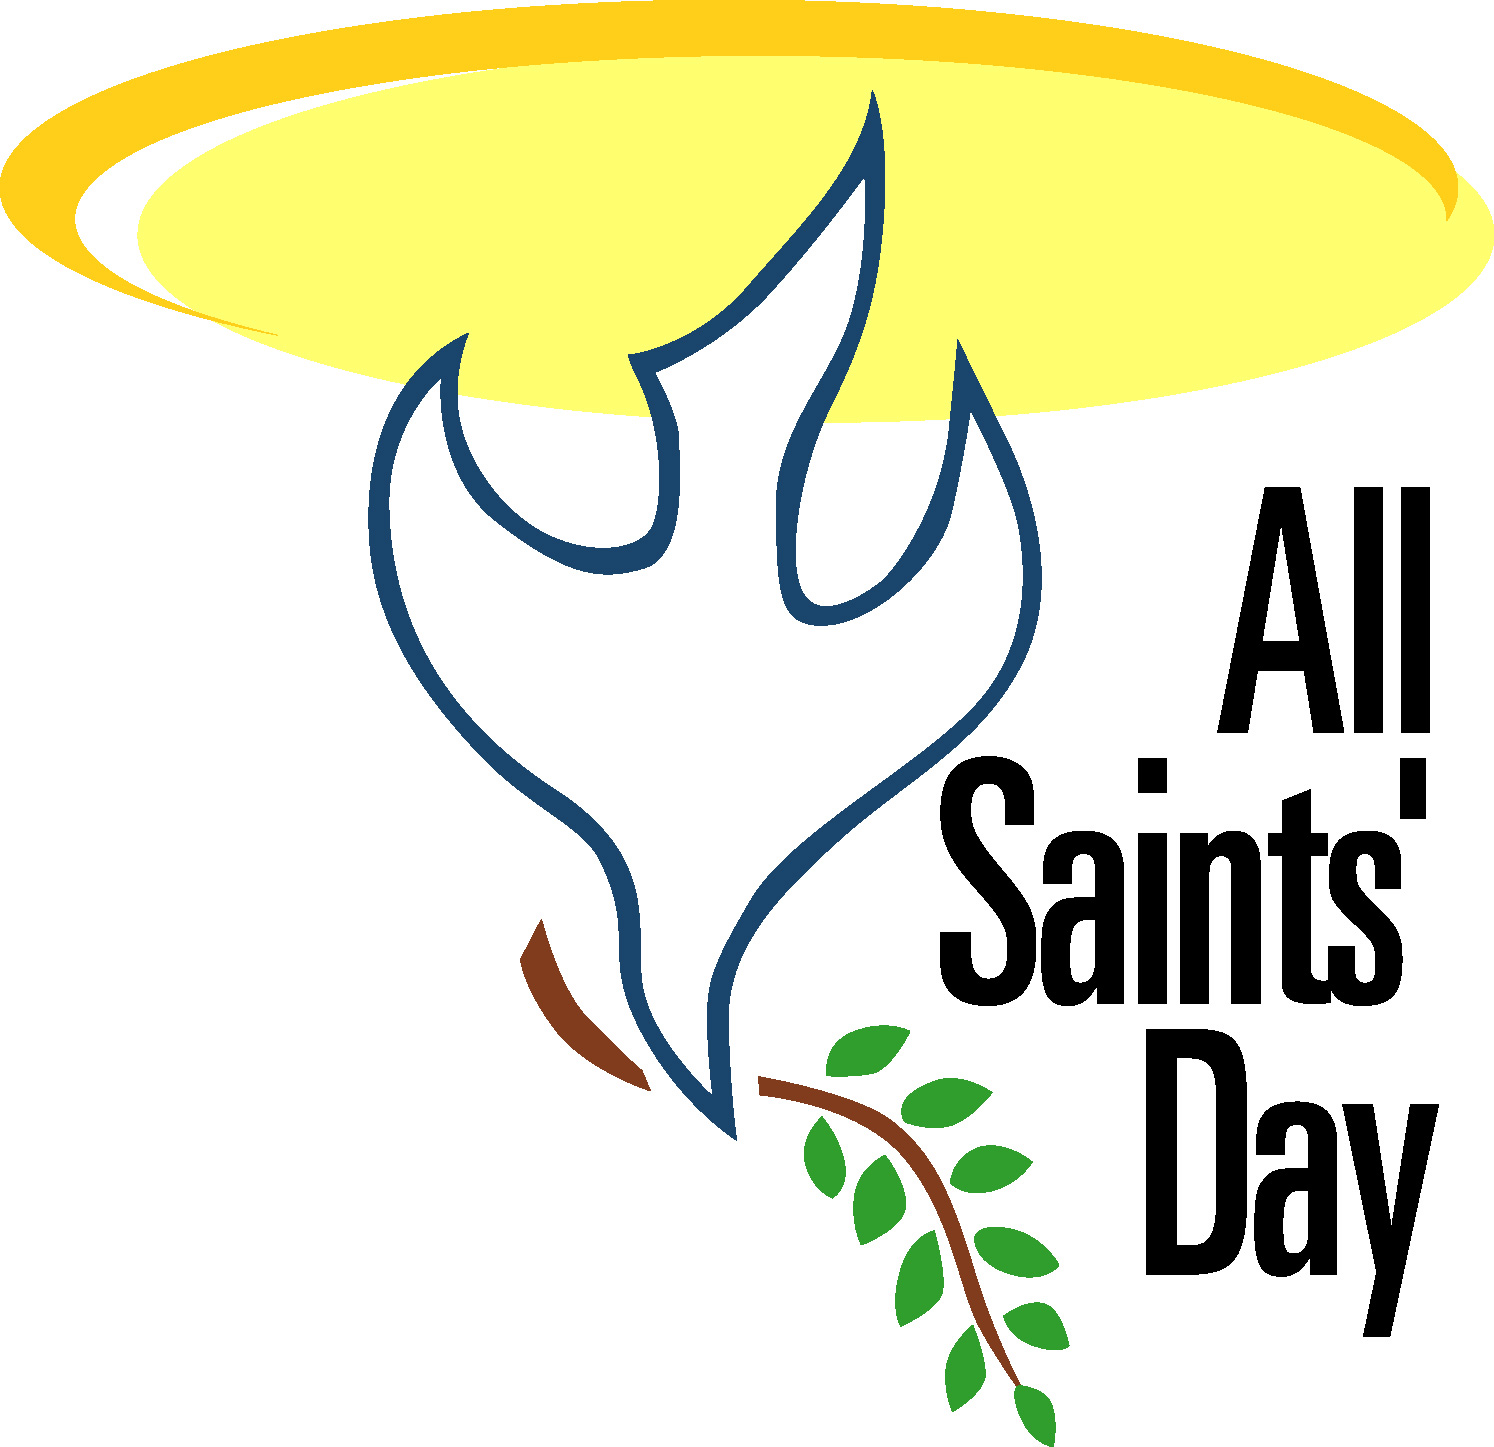 All Saints Day 2016 Clipart.